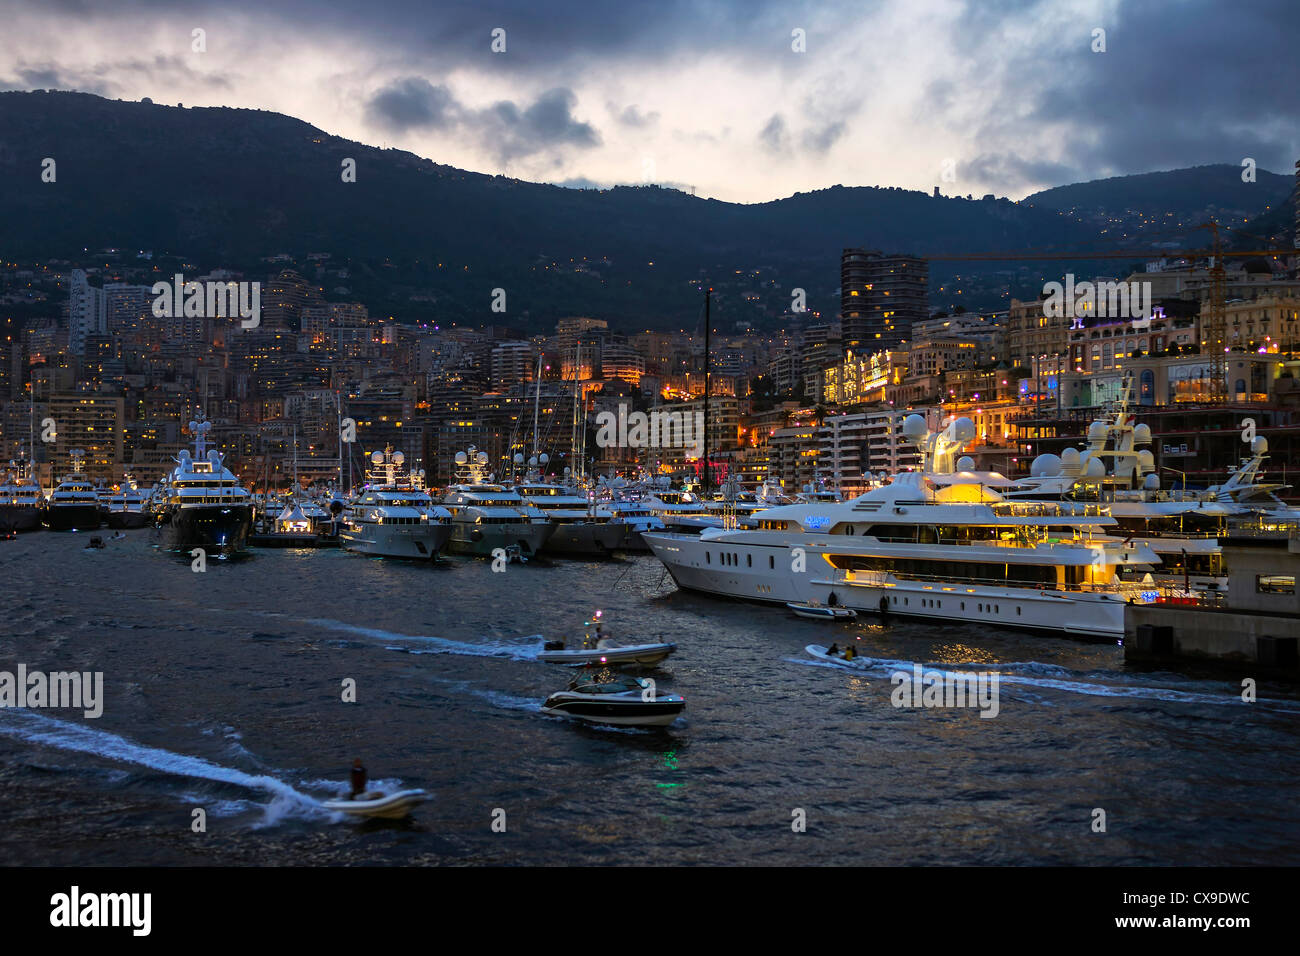 Monaco Port Hercule at Dusk during the 2012 Yacht Show - Stock Image